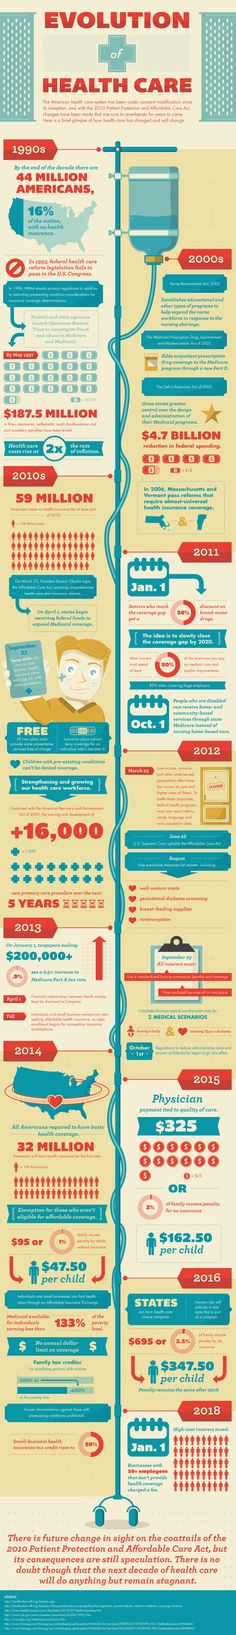 Evolution of Health Care #infographic A snapshot of U.S. health care reform efforts.